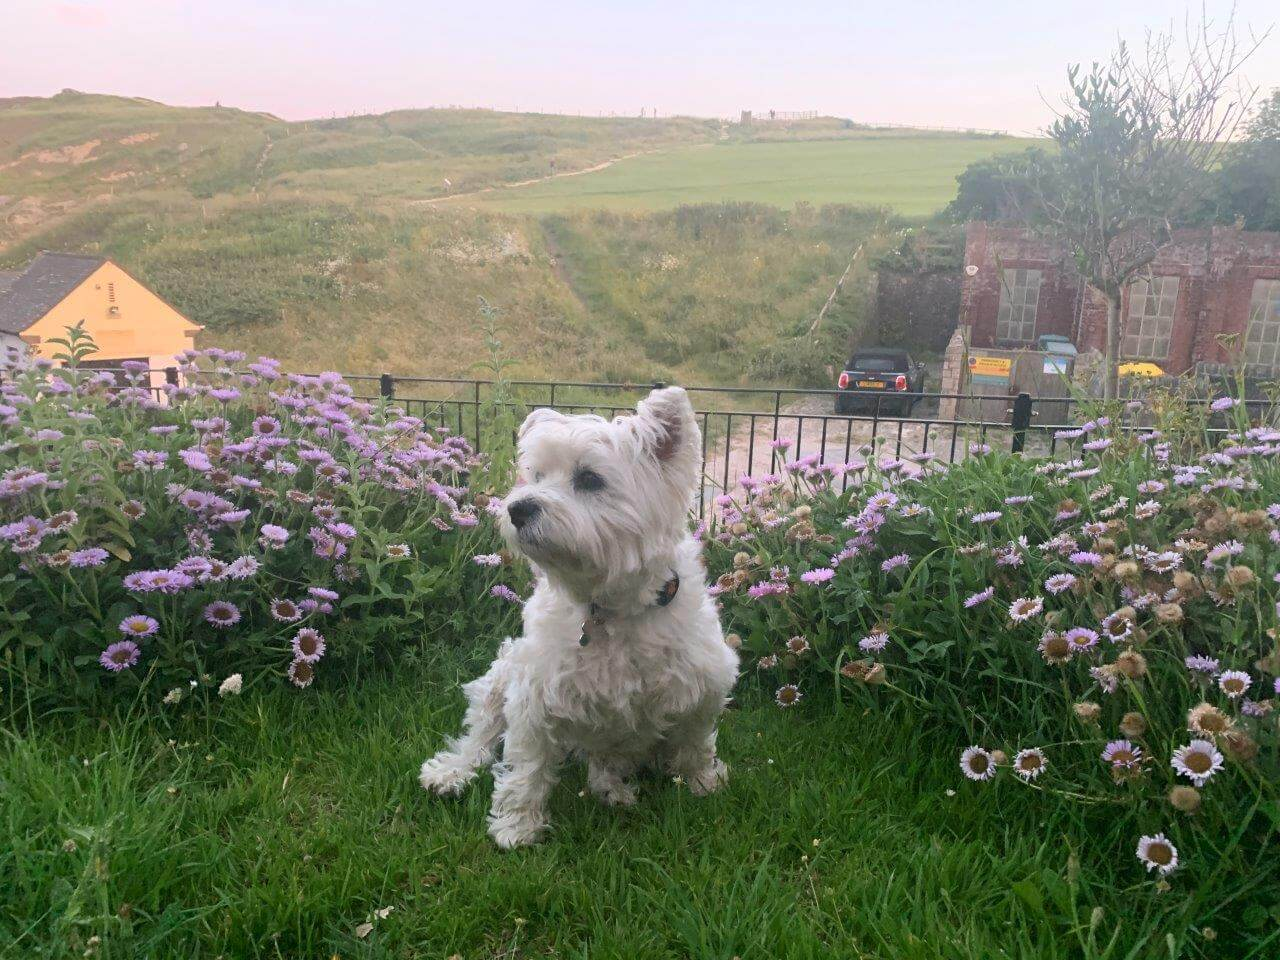 West Highland White Terrier sat amongst flowers